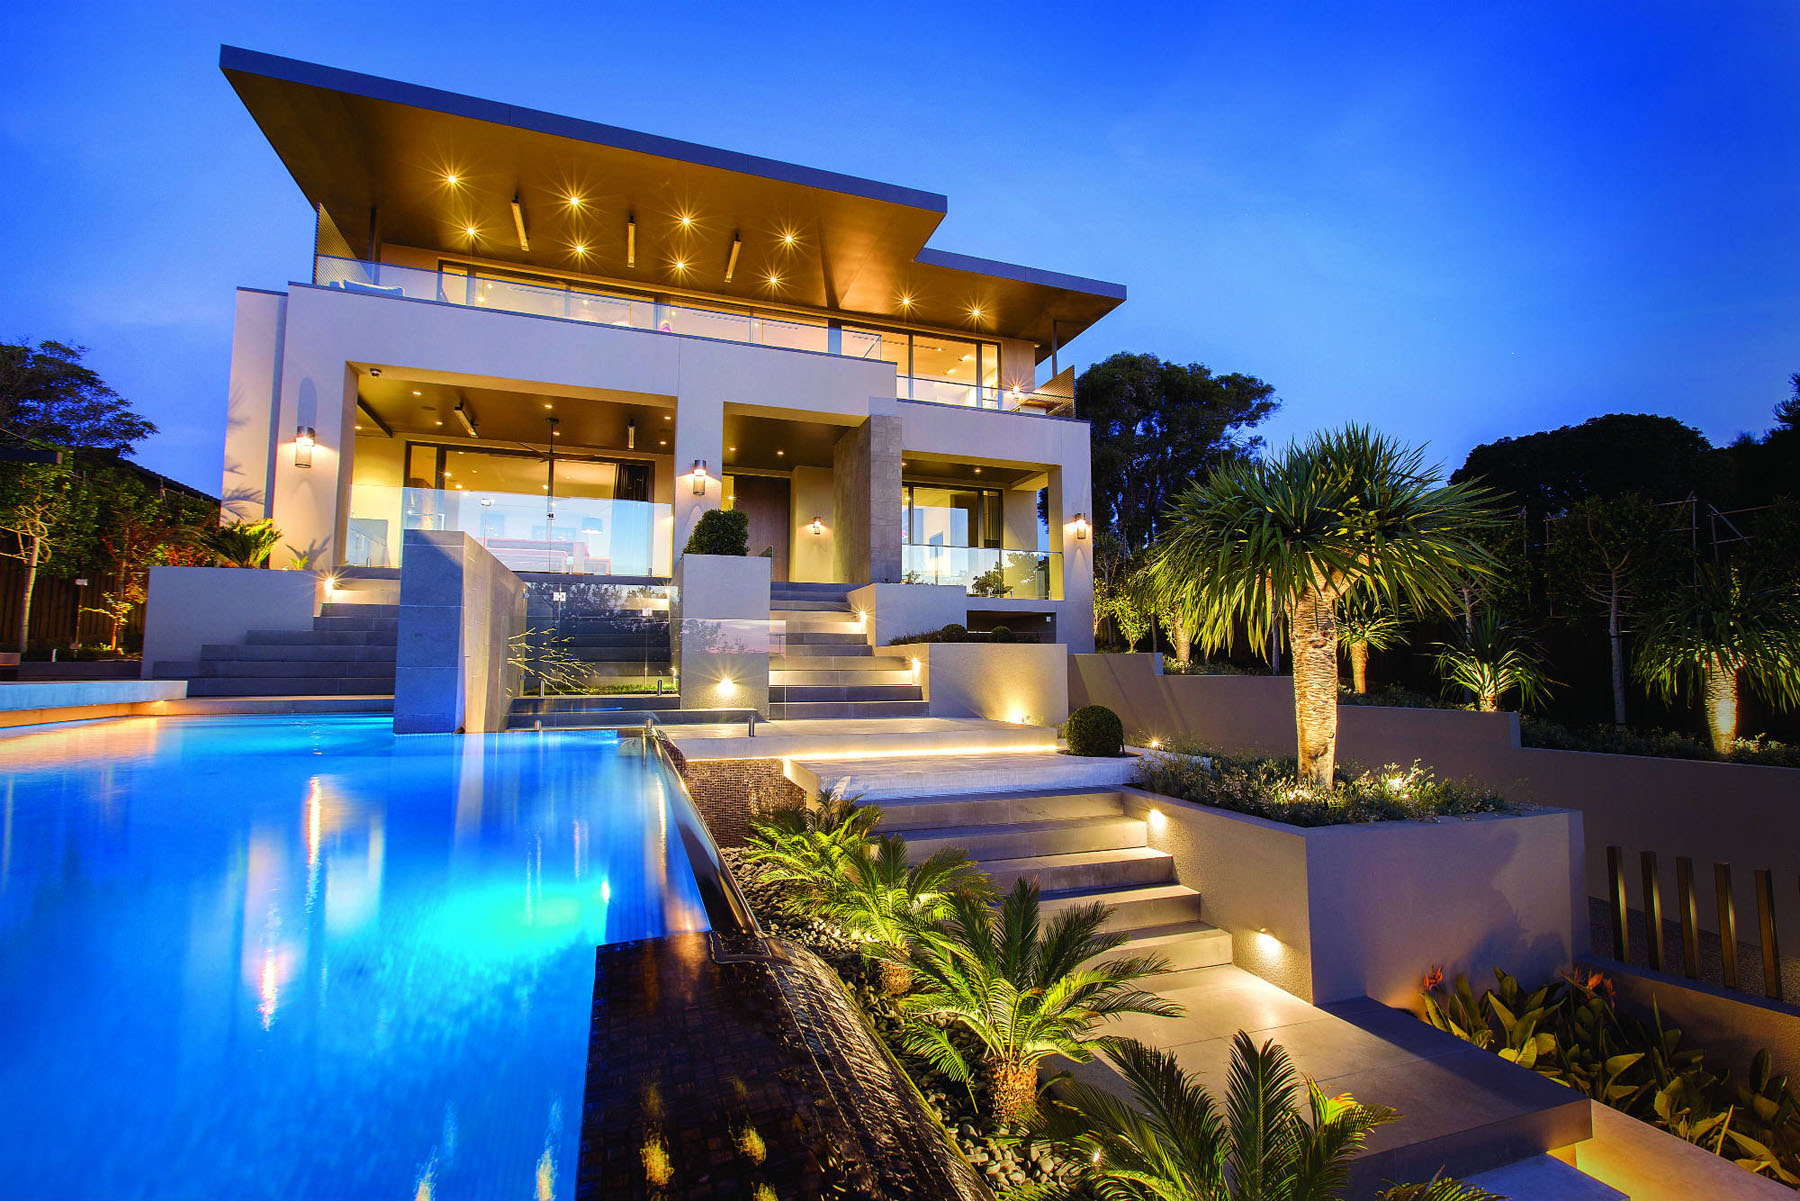 Luxury contemporary home with front yard pool